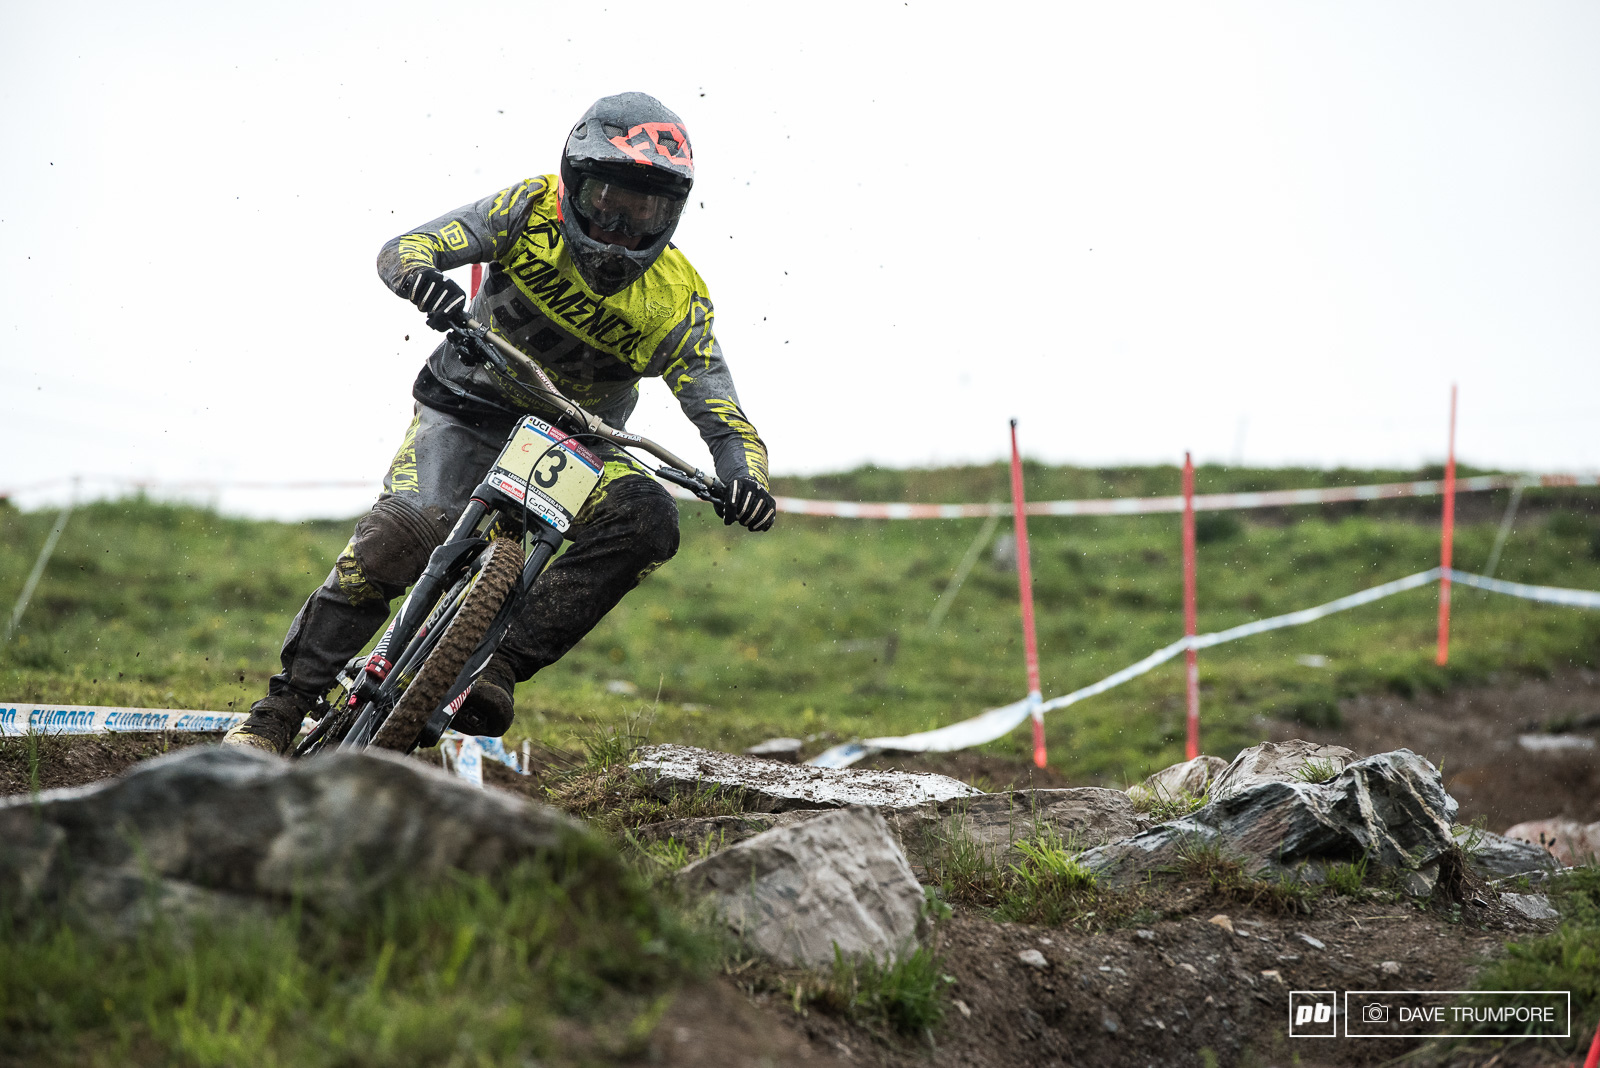 Riding on a high after last weeks result in Fort William Gaetan Vige matched the number on his race plate to take 3rd in qualifying.